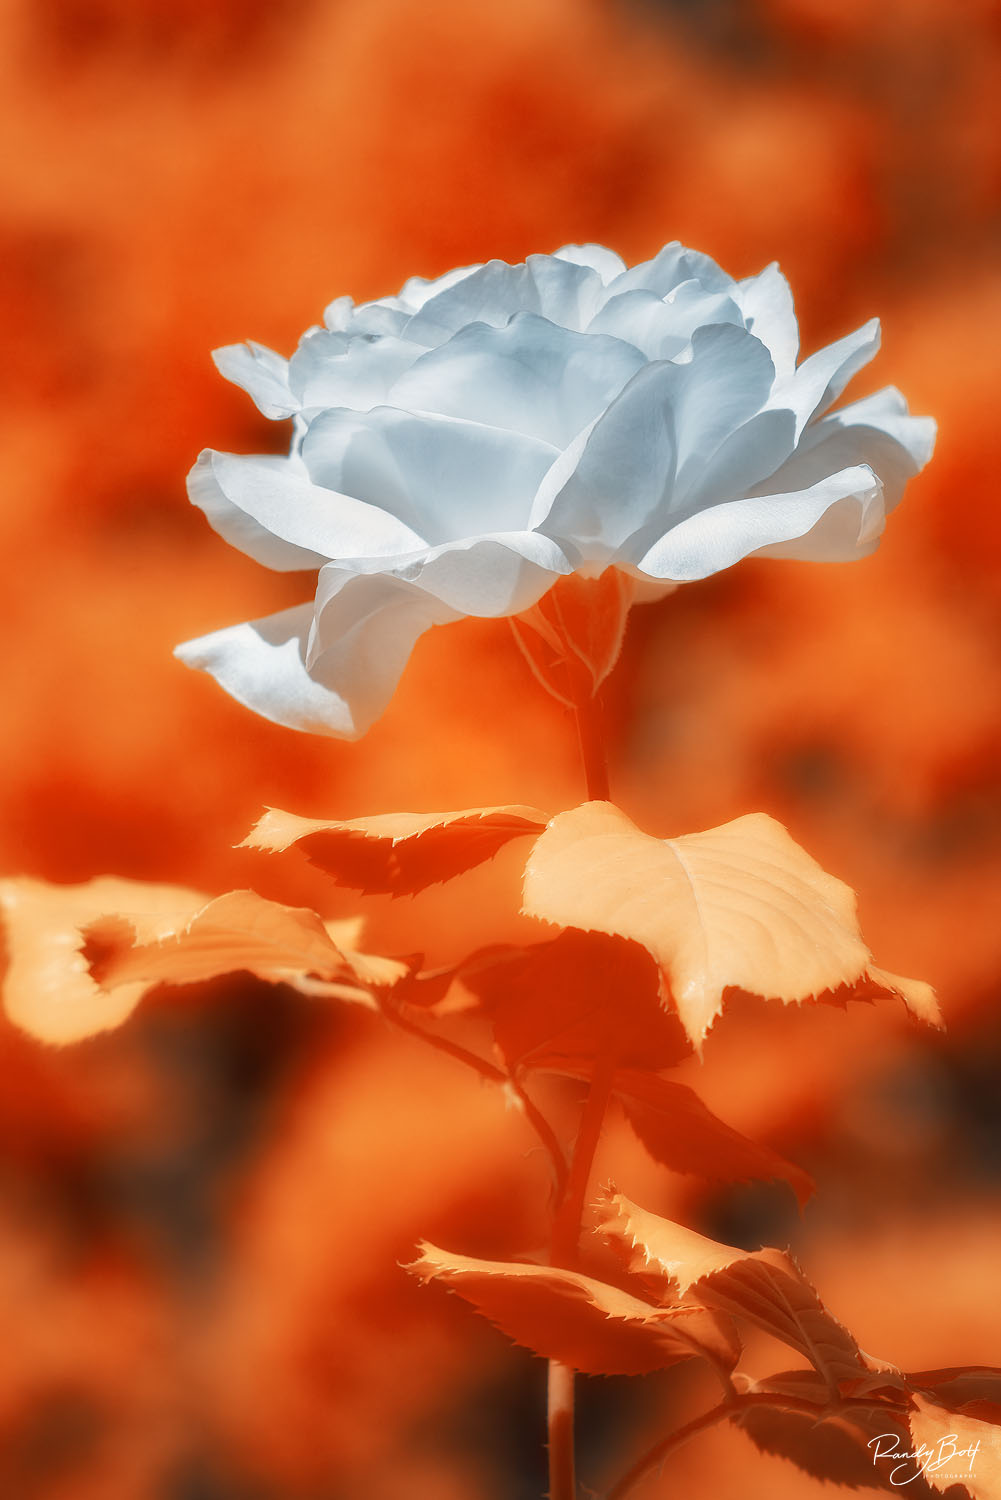 infrared image of a red rose in 590 nm from a full spectrum converted camera